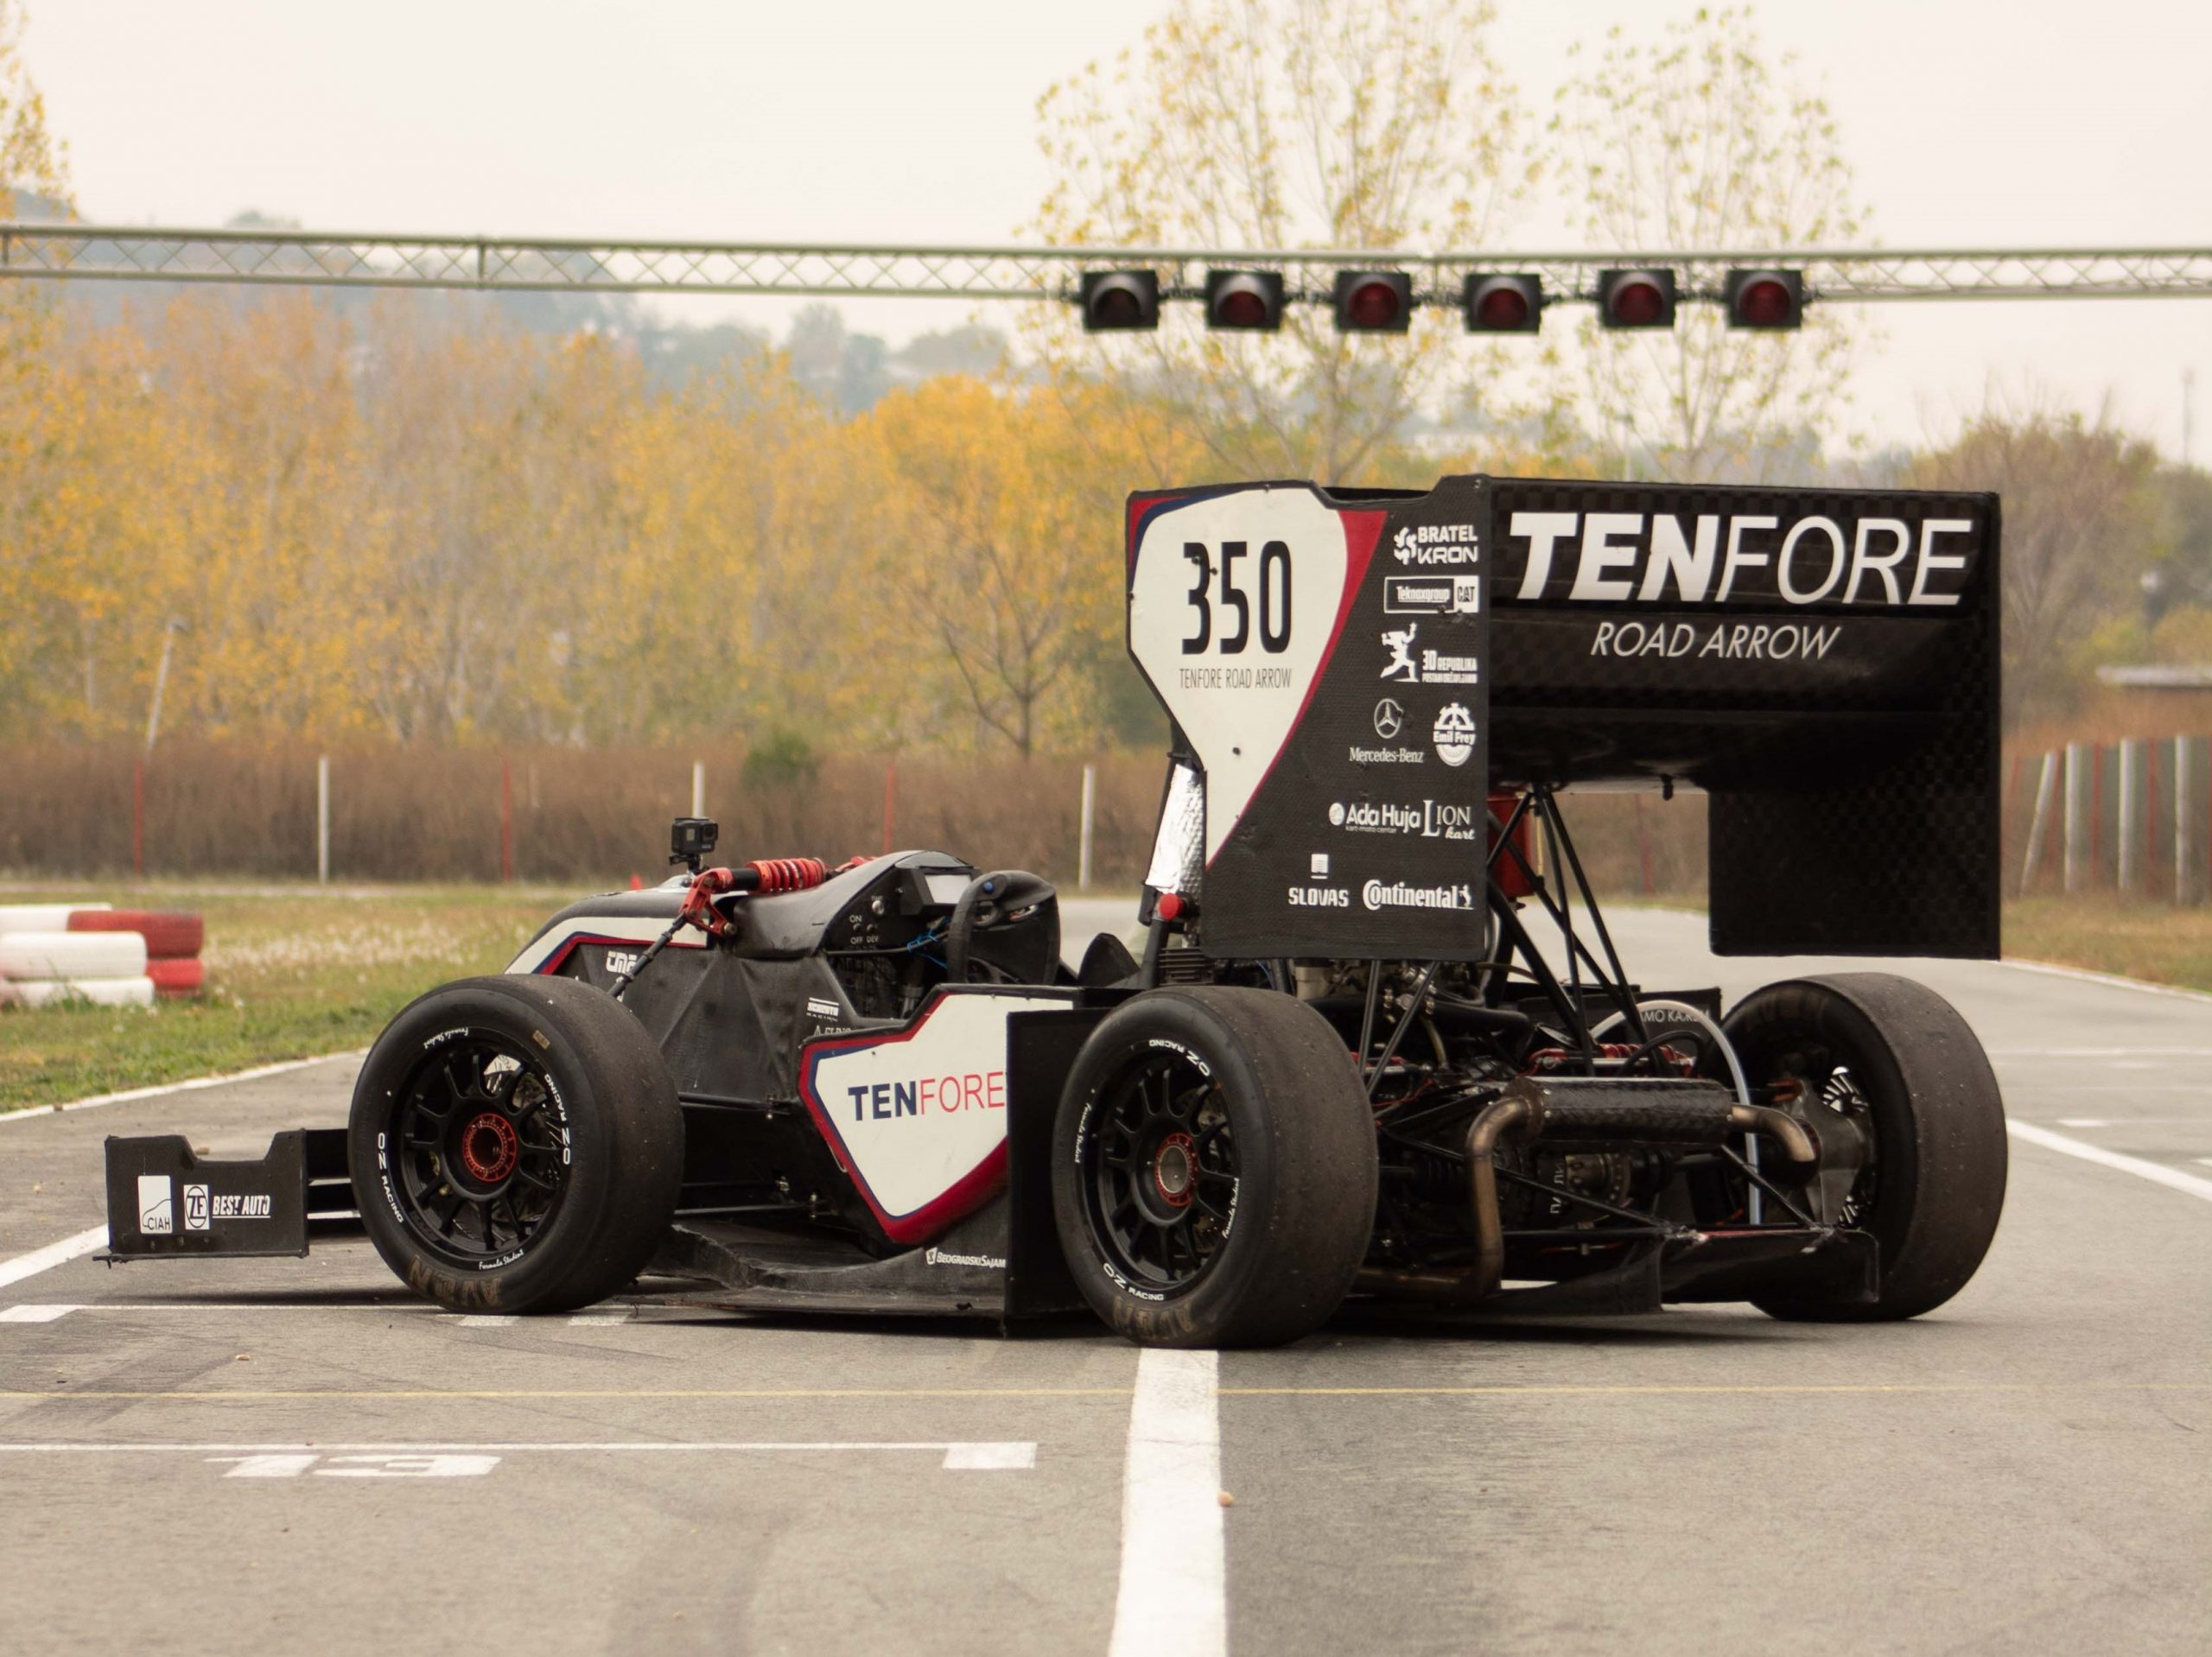 Tenfore 2019 vehicle